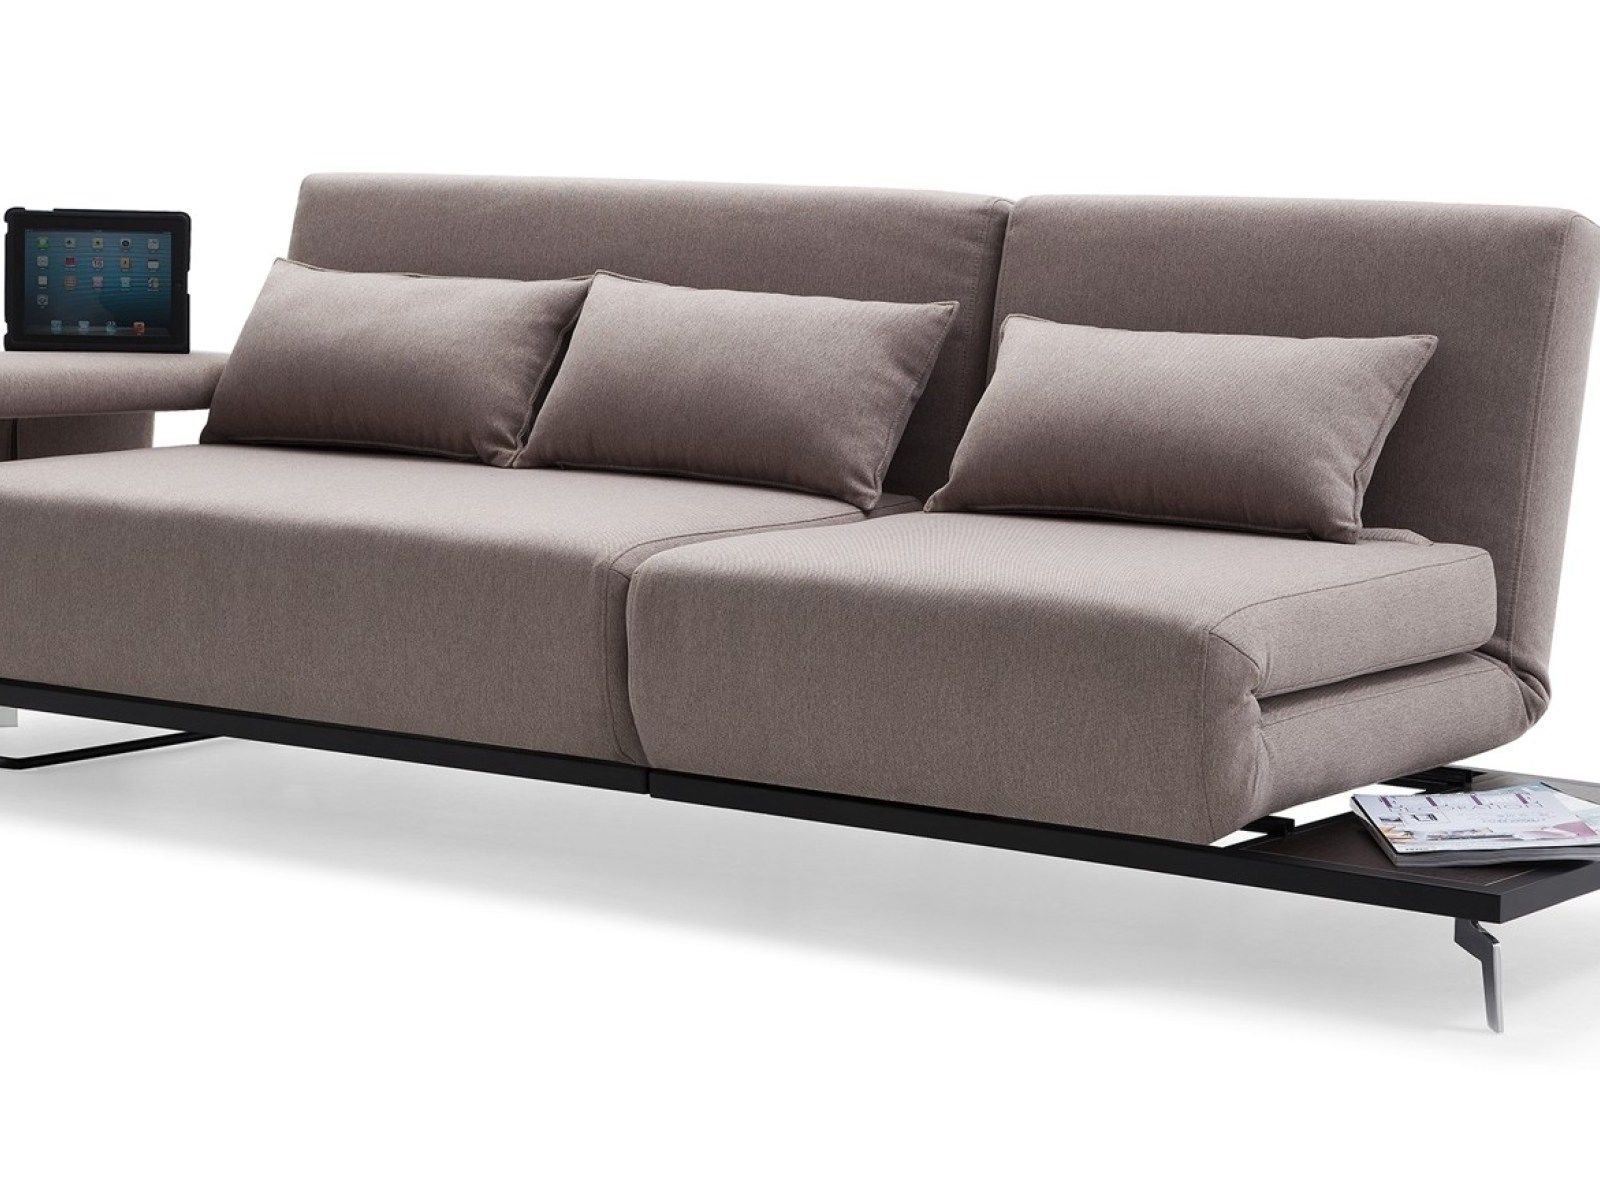 lovely futon sofa bed with storage ideas-Incredible Futon sofa Bed with Storage Layout